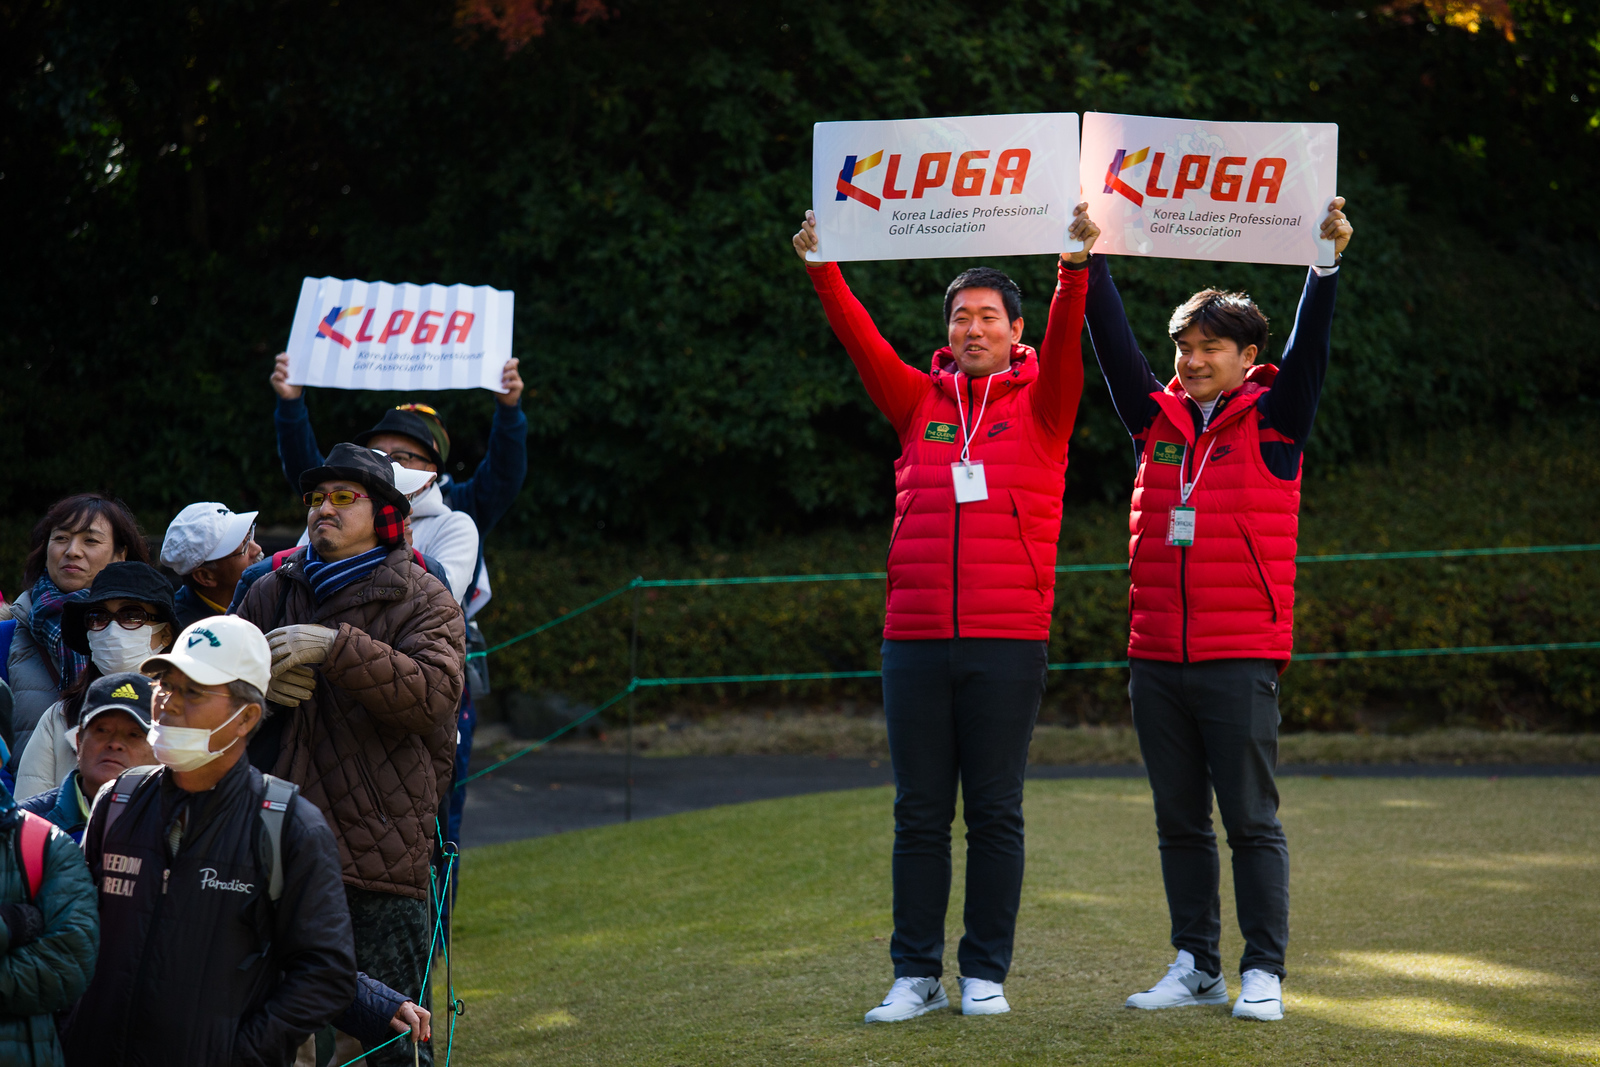 KLPGA supporters on the first tee during the Friday fourballs